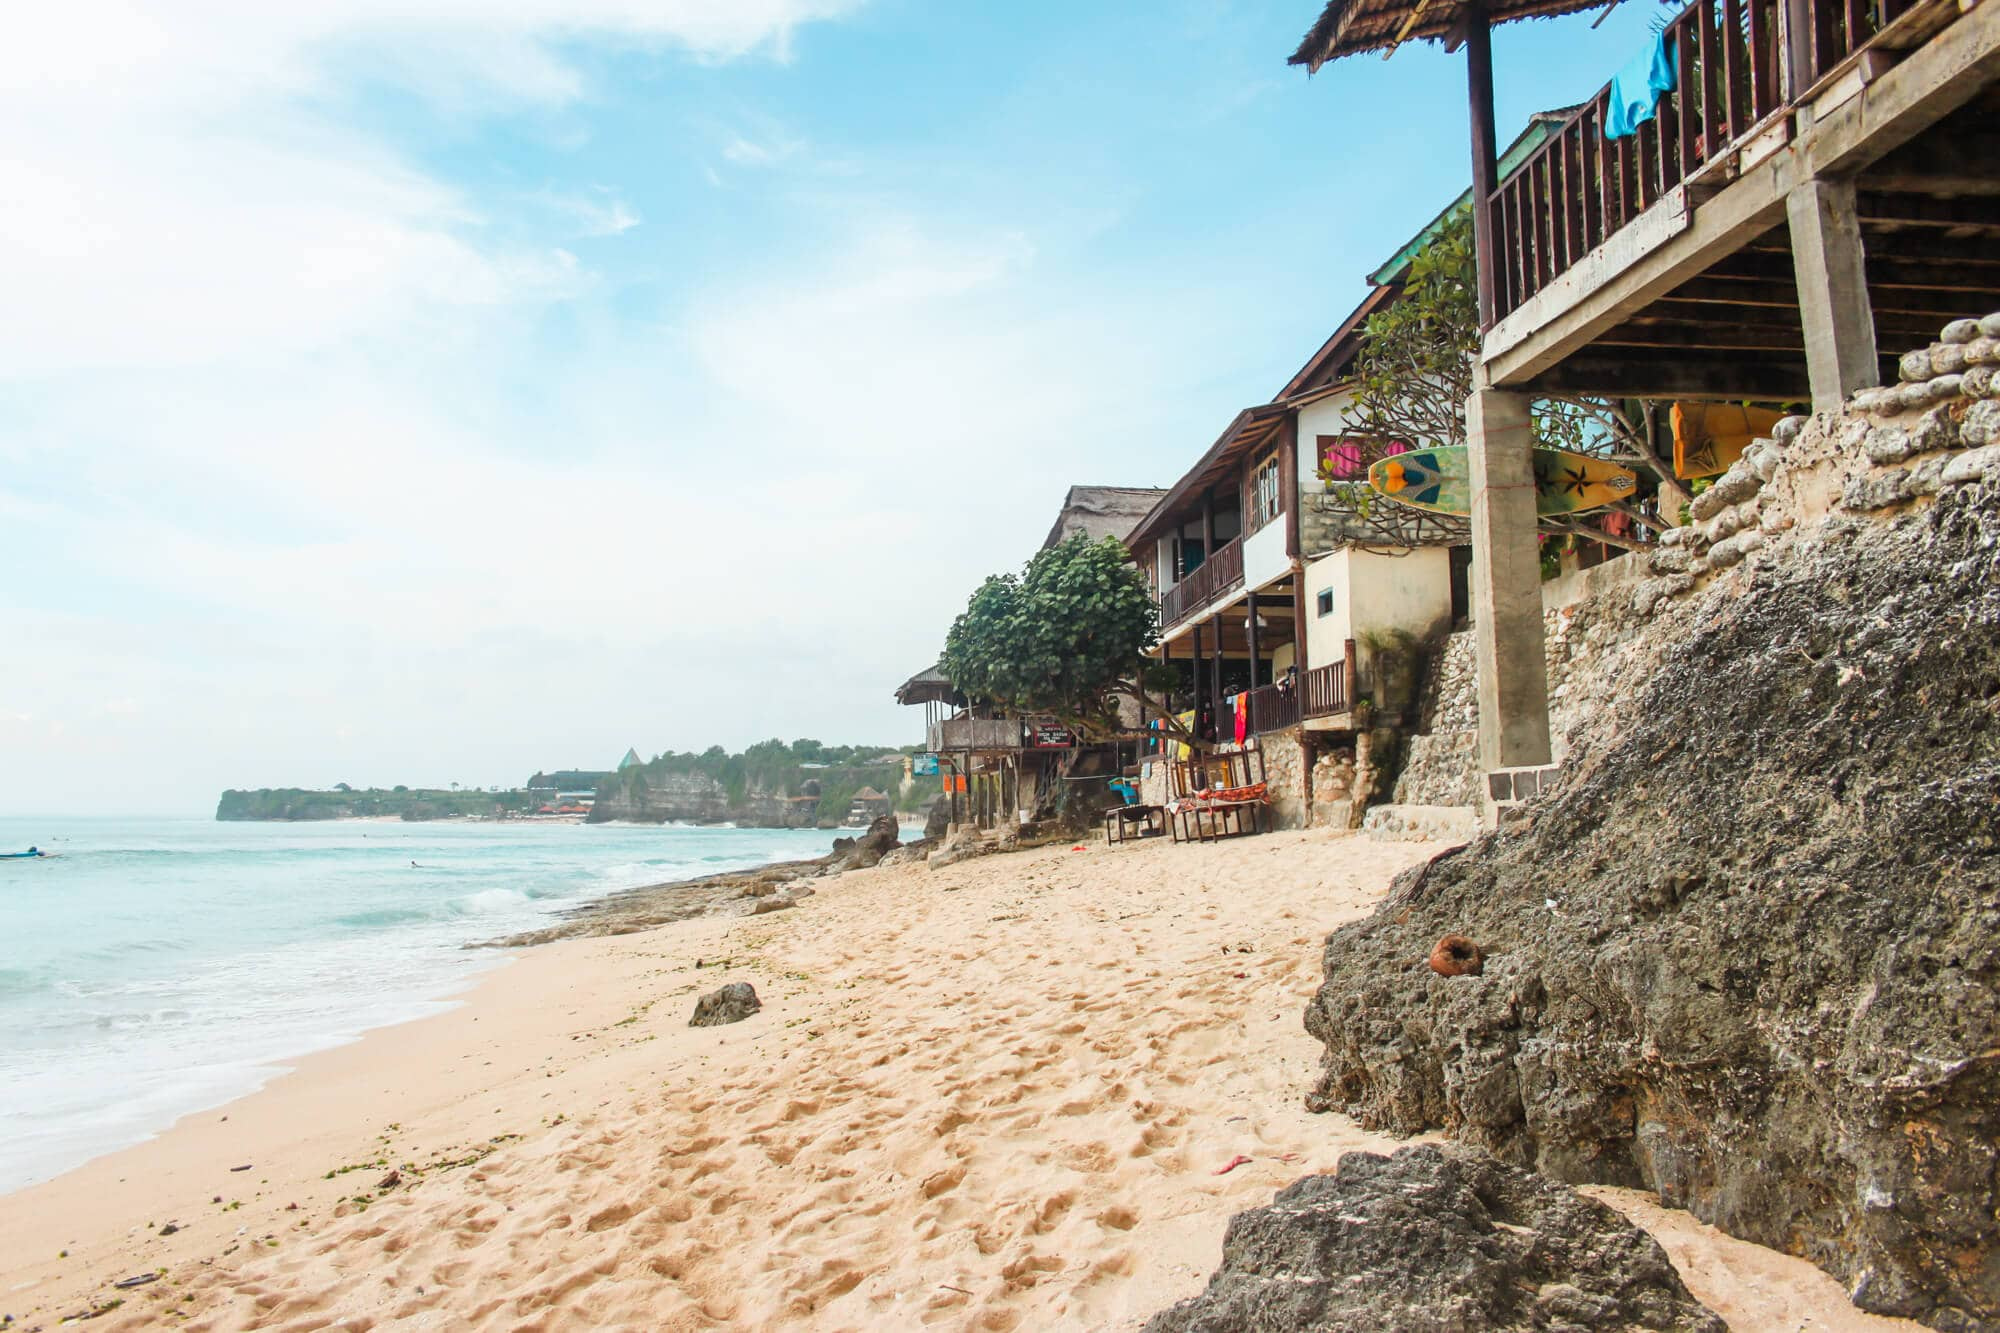 Where to stay in Bali: A complete guide to the different areas on the island - Bingin Beach in South Bali